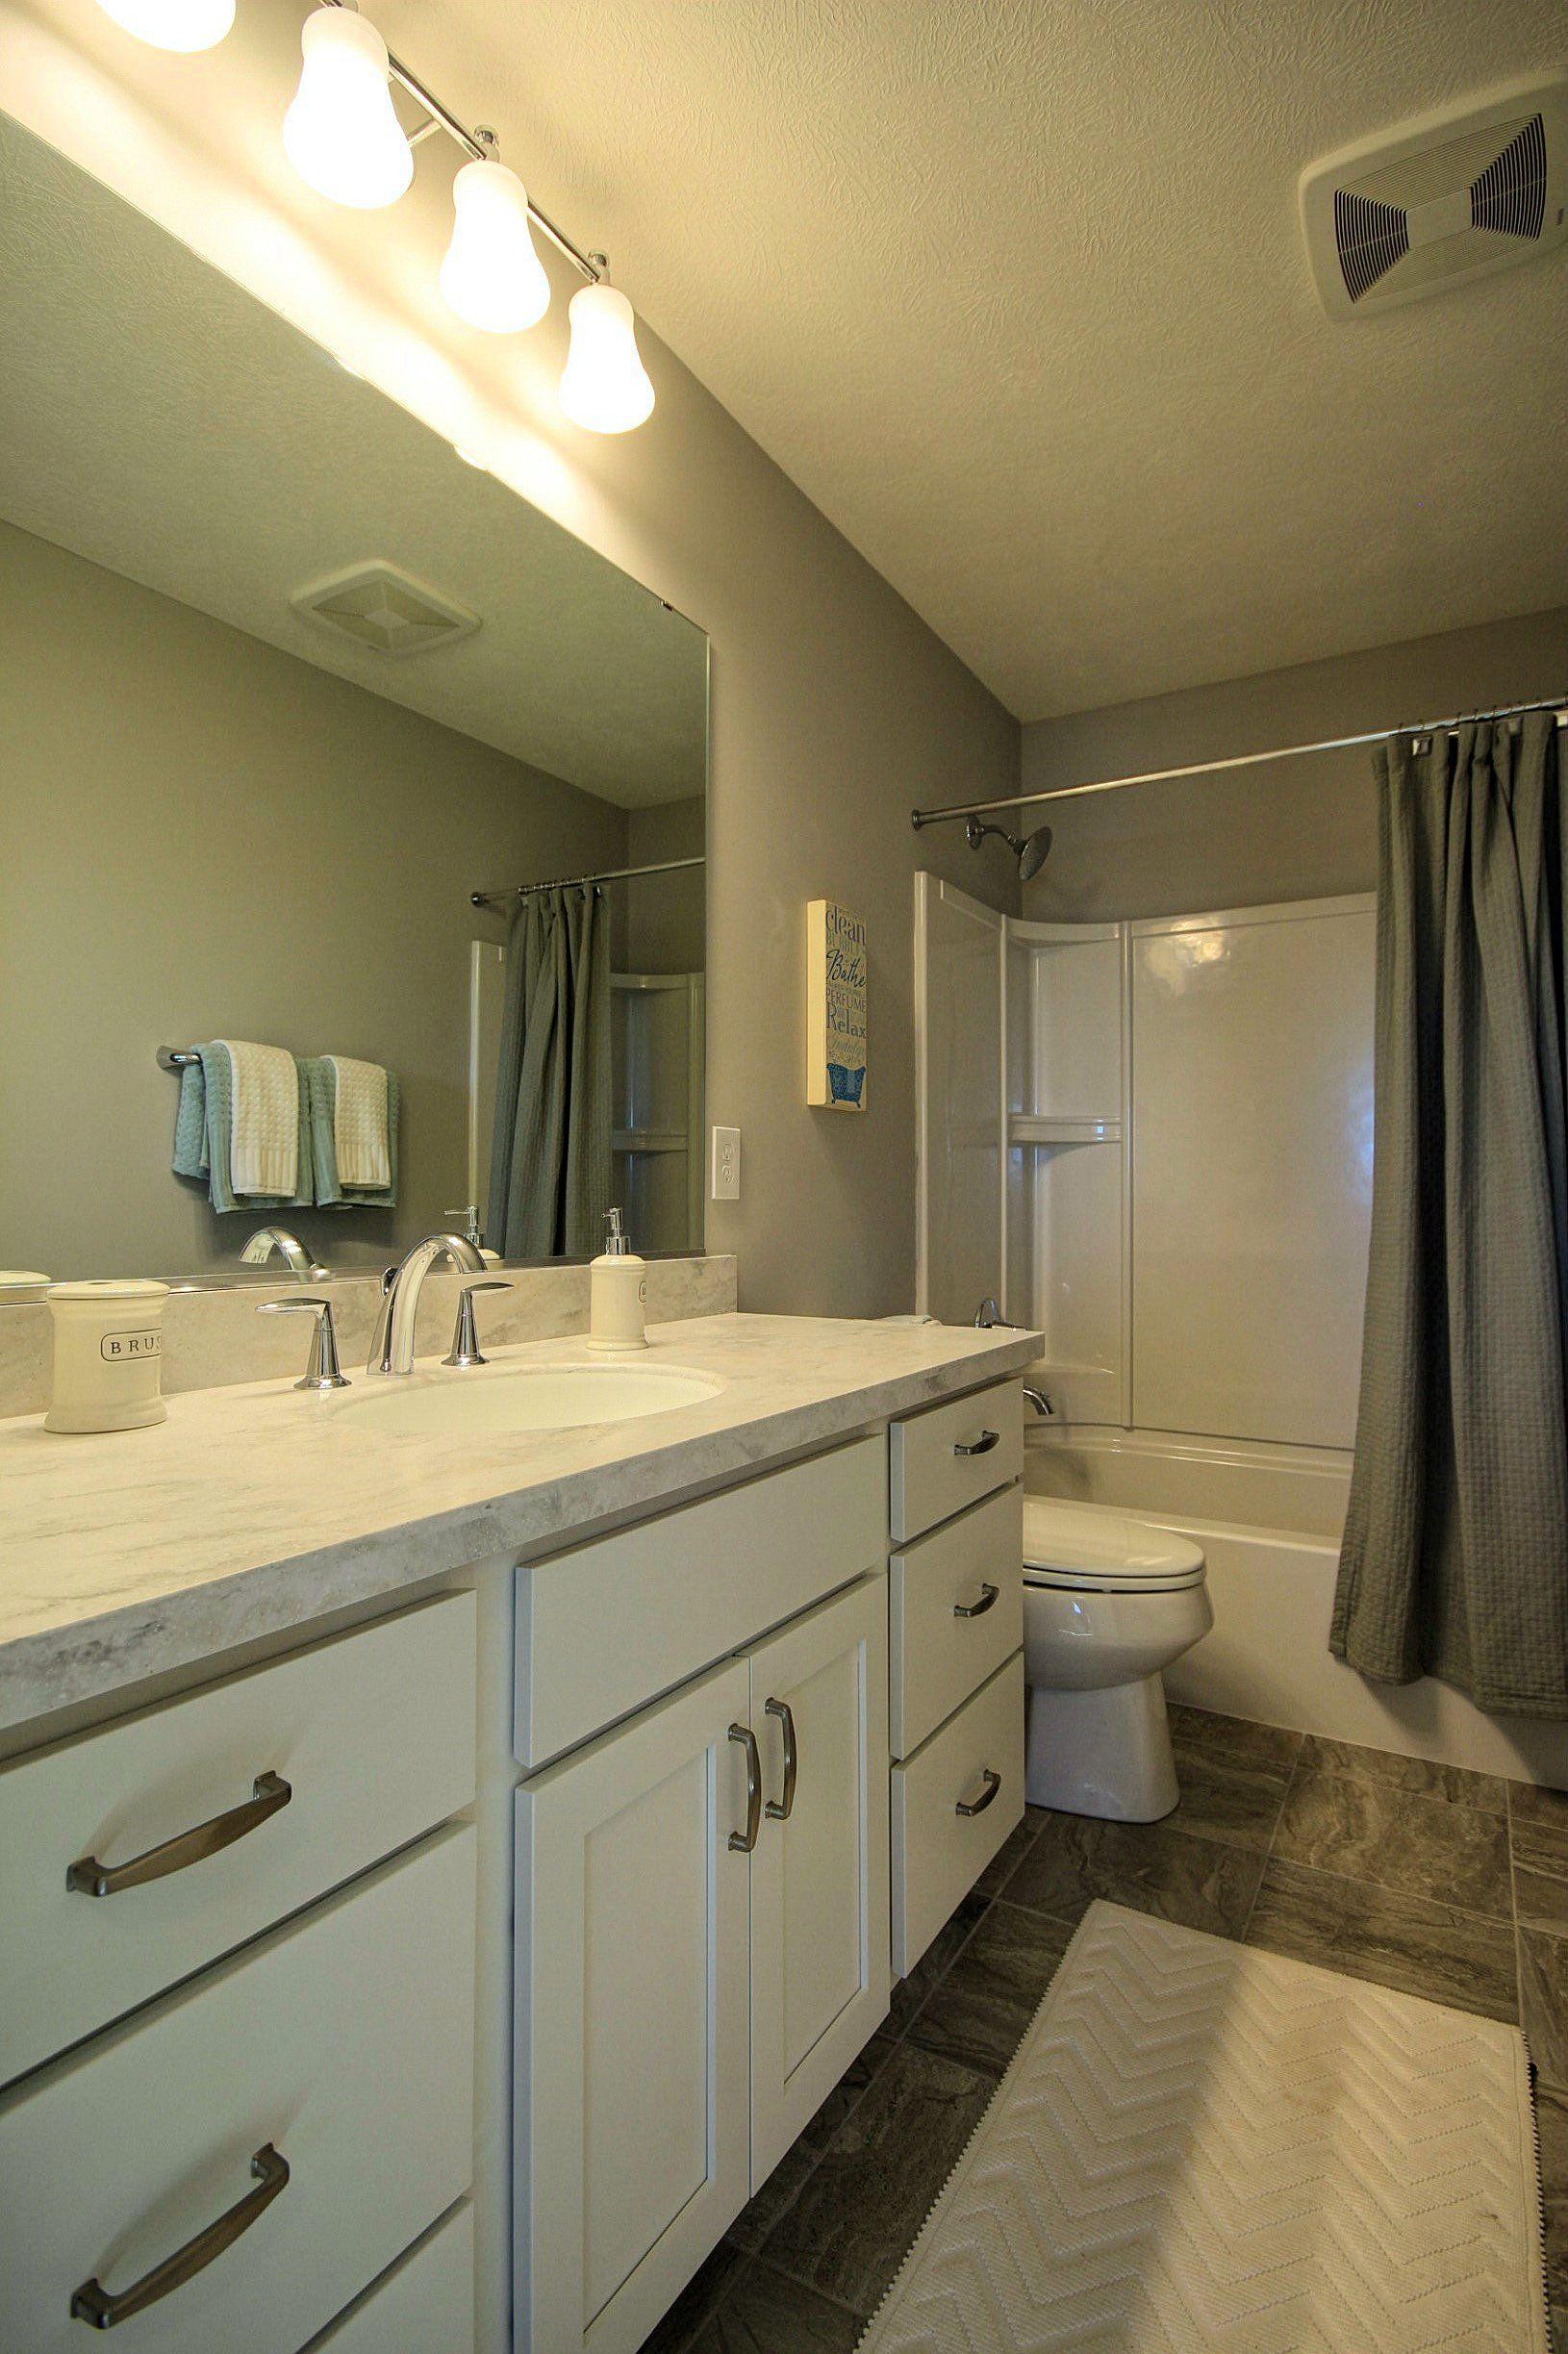 Bathroom featured in the Mackinaw By Mayberry Homes in Lansing, MI